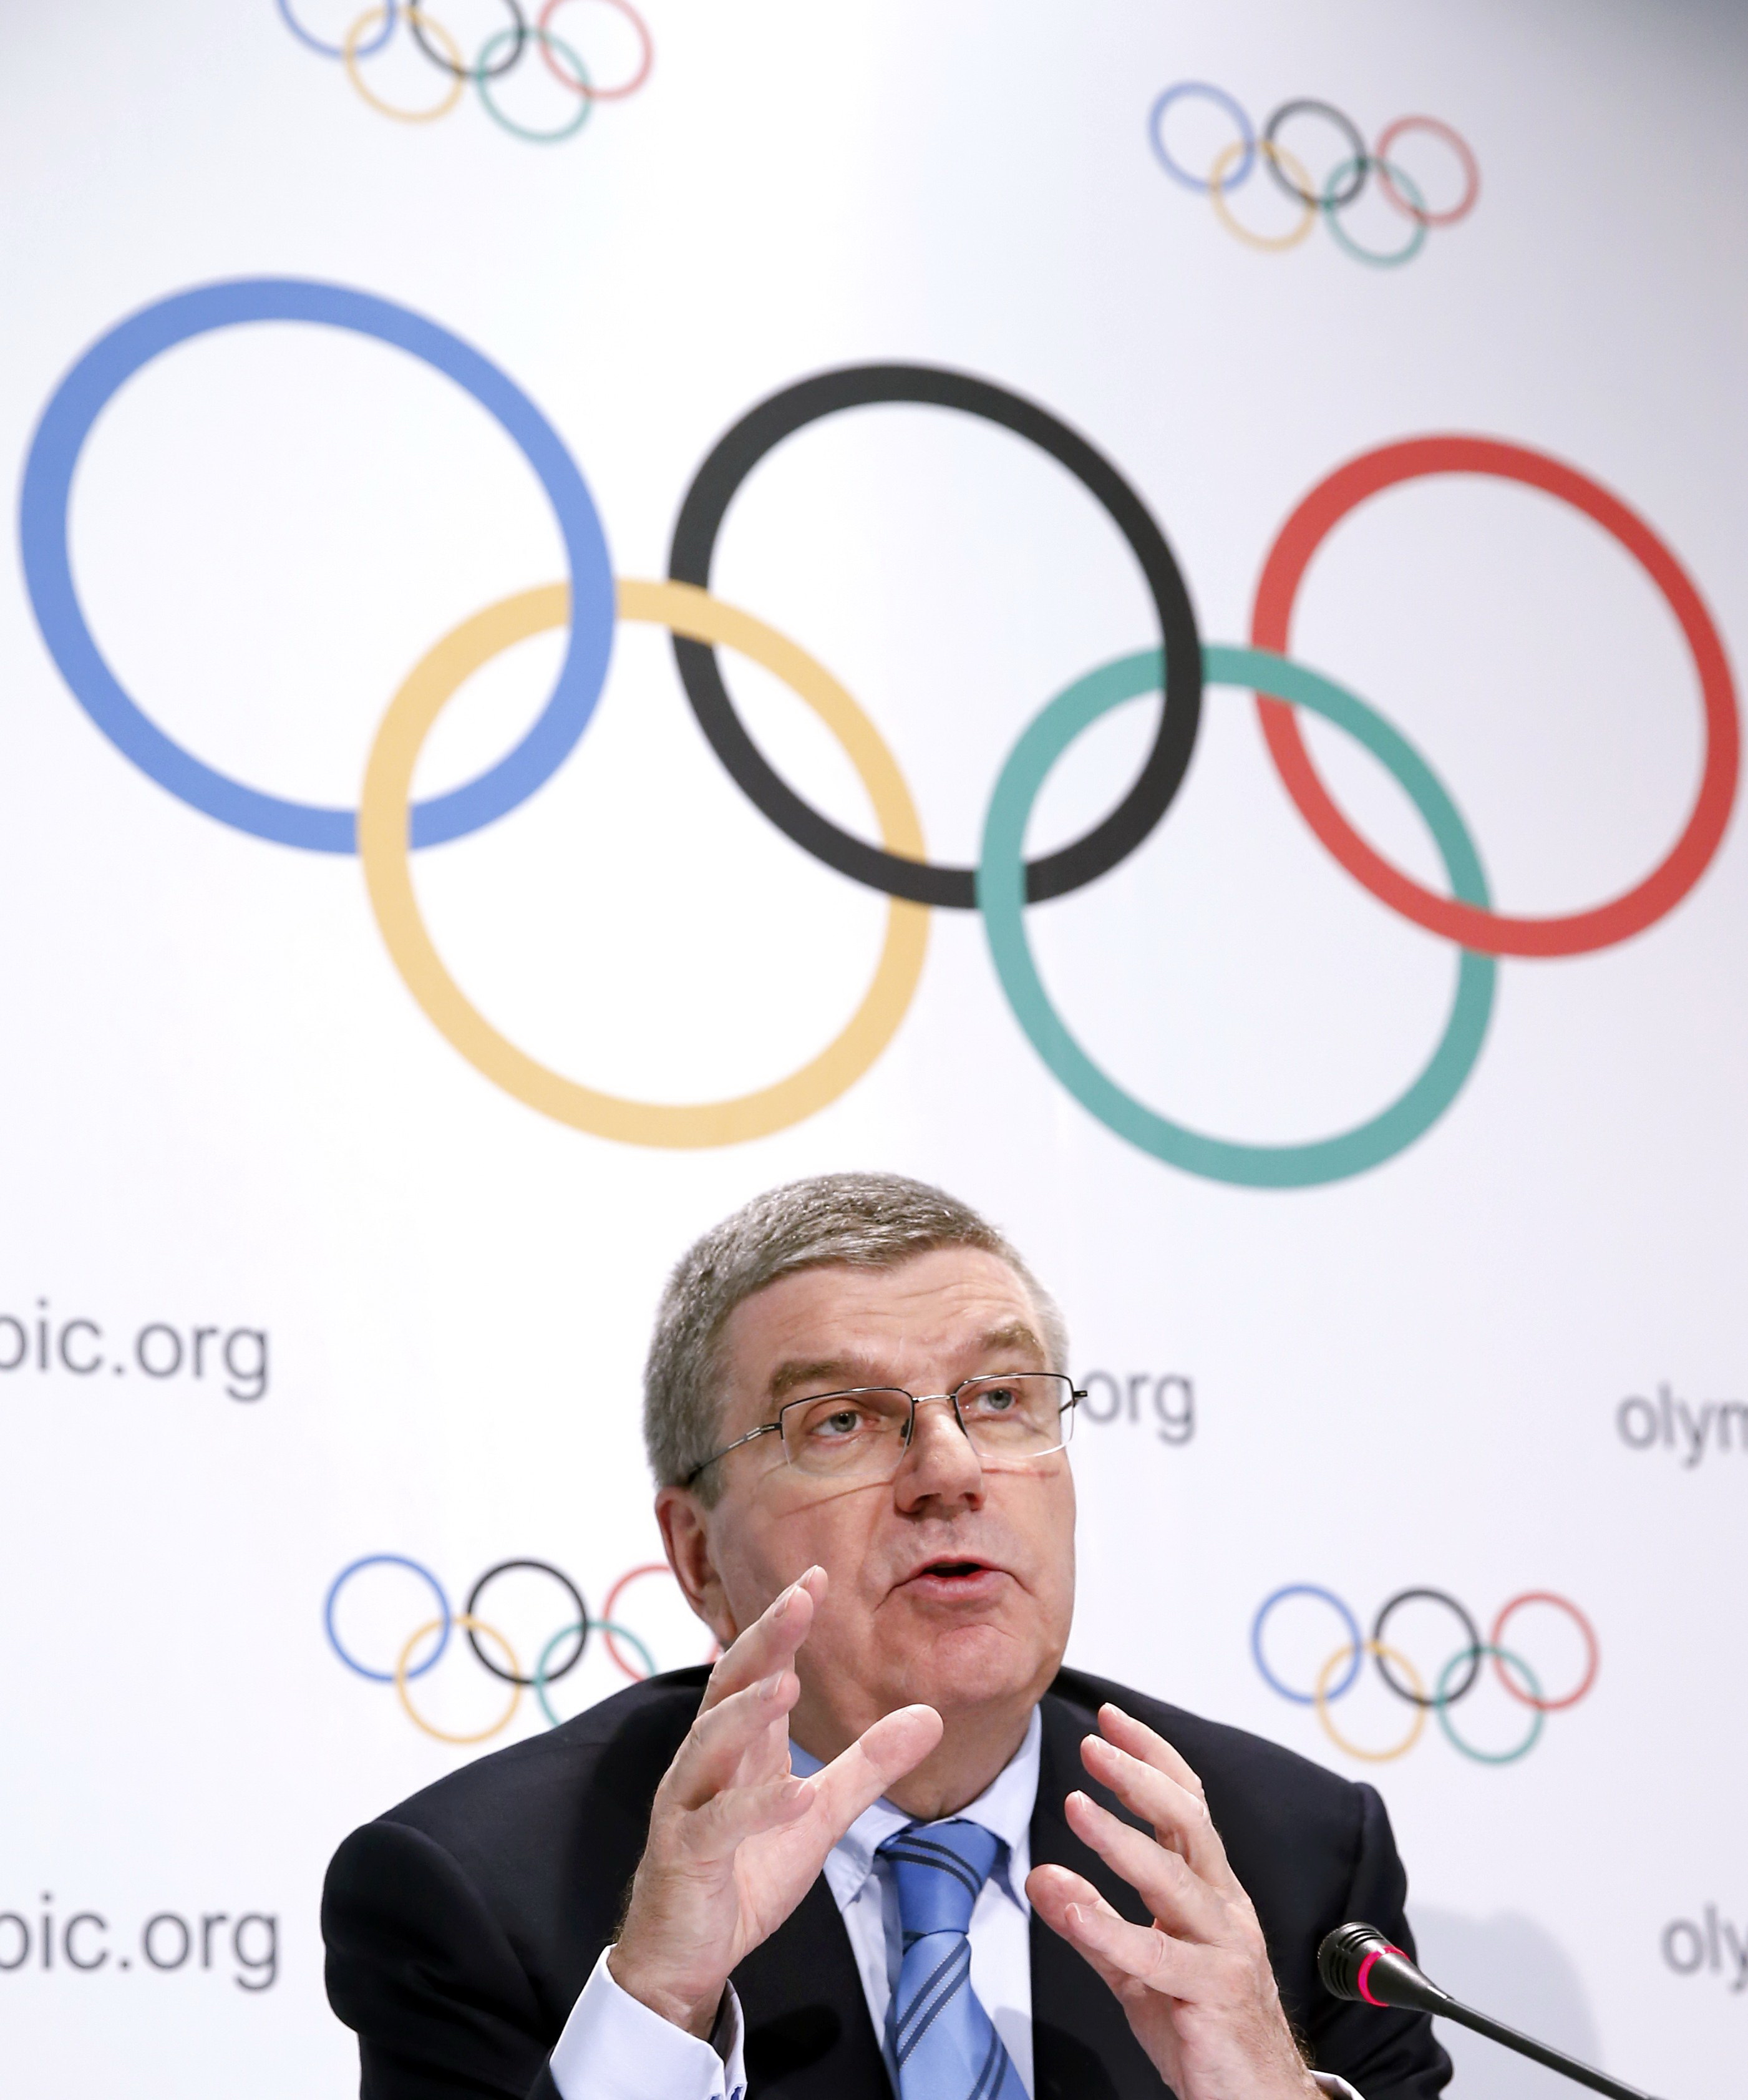 IOC to start audits for sports bodies over Olympic money